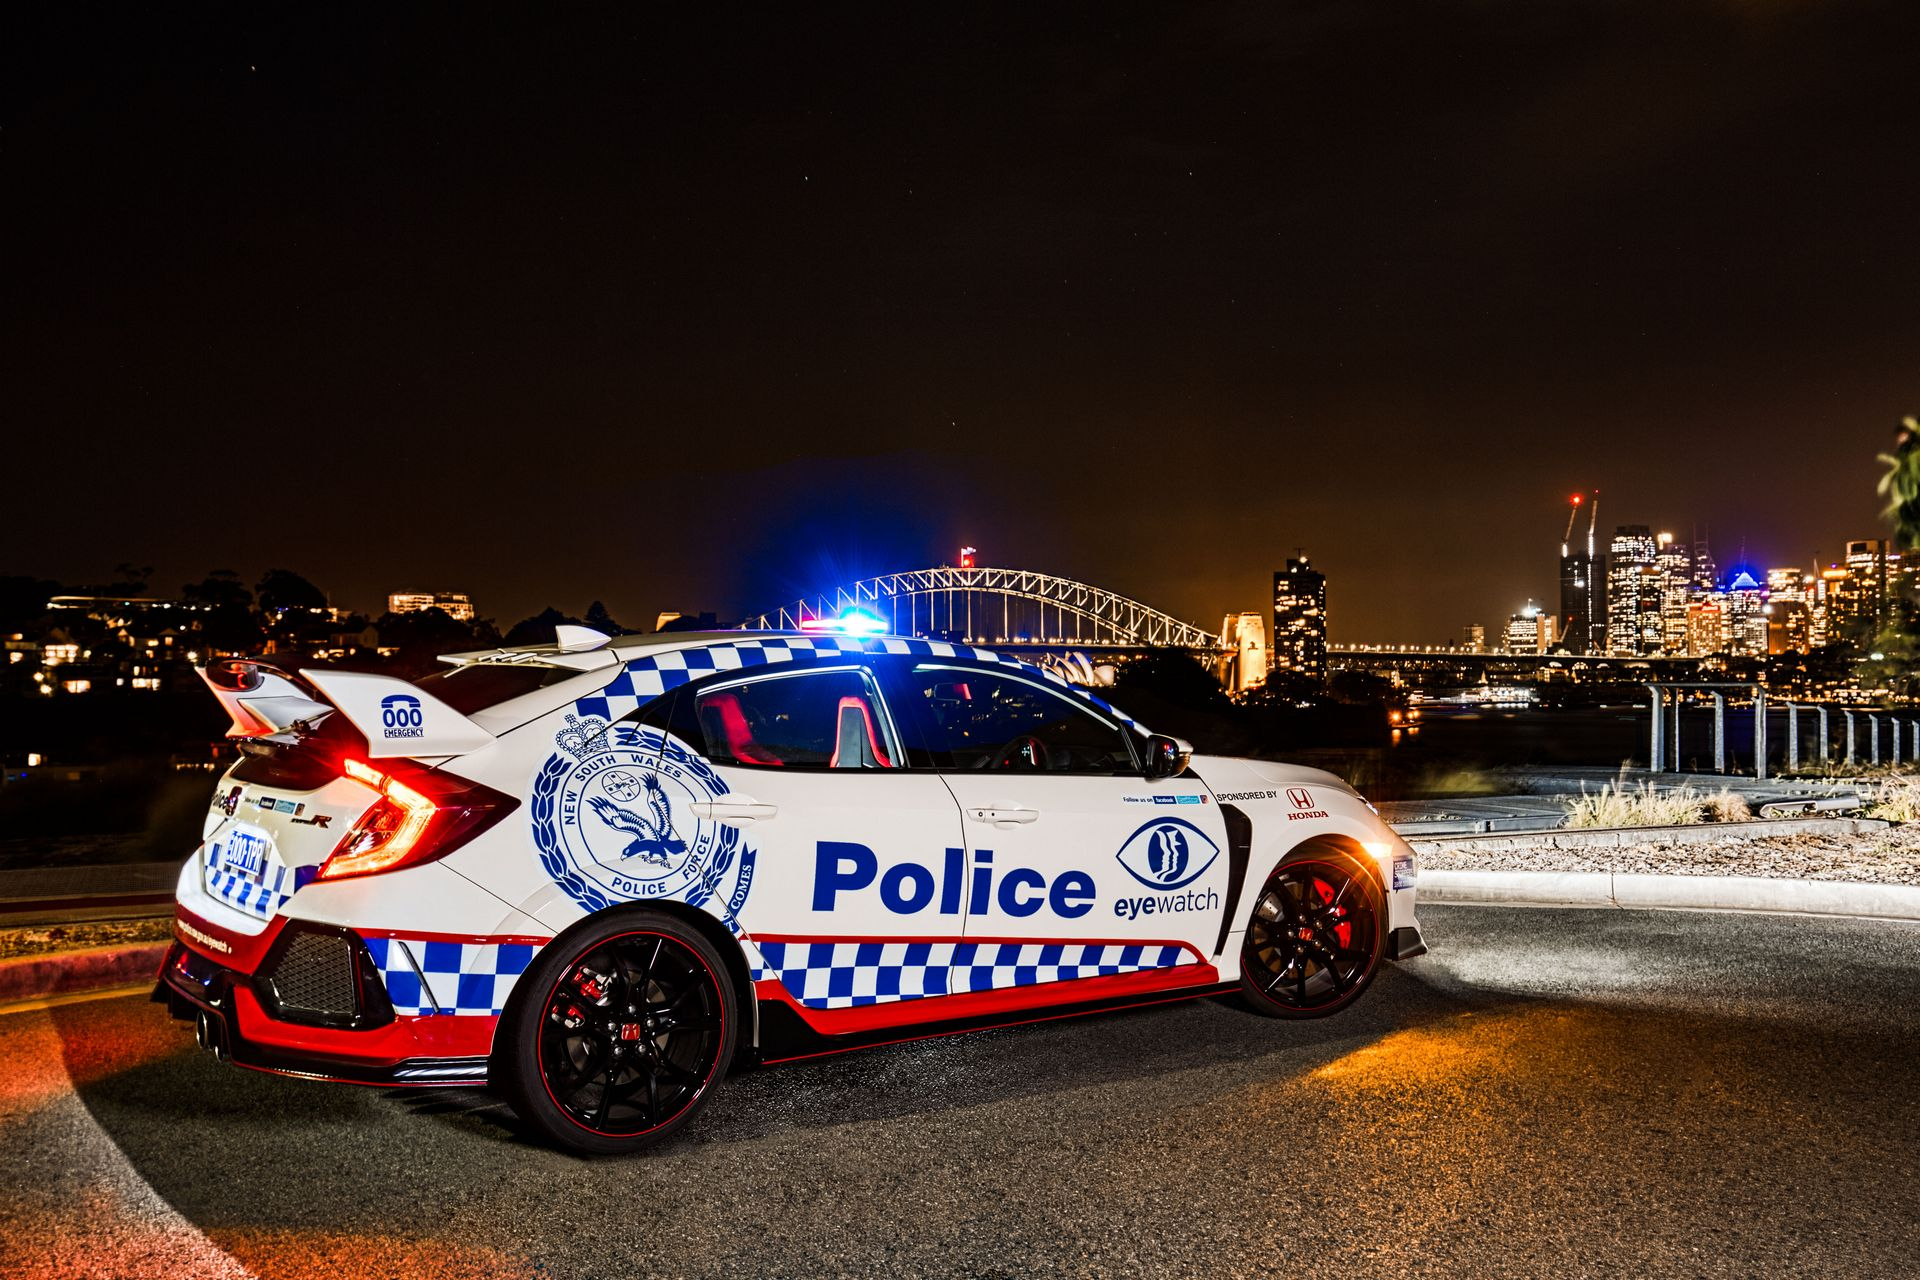 Honda Civic Type R police car Australia (6)